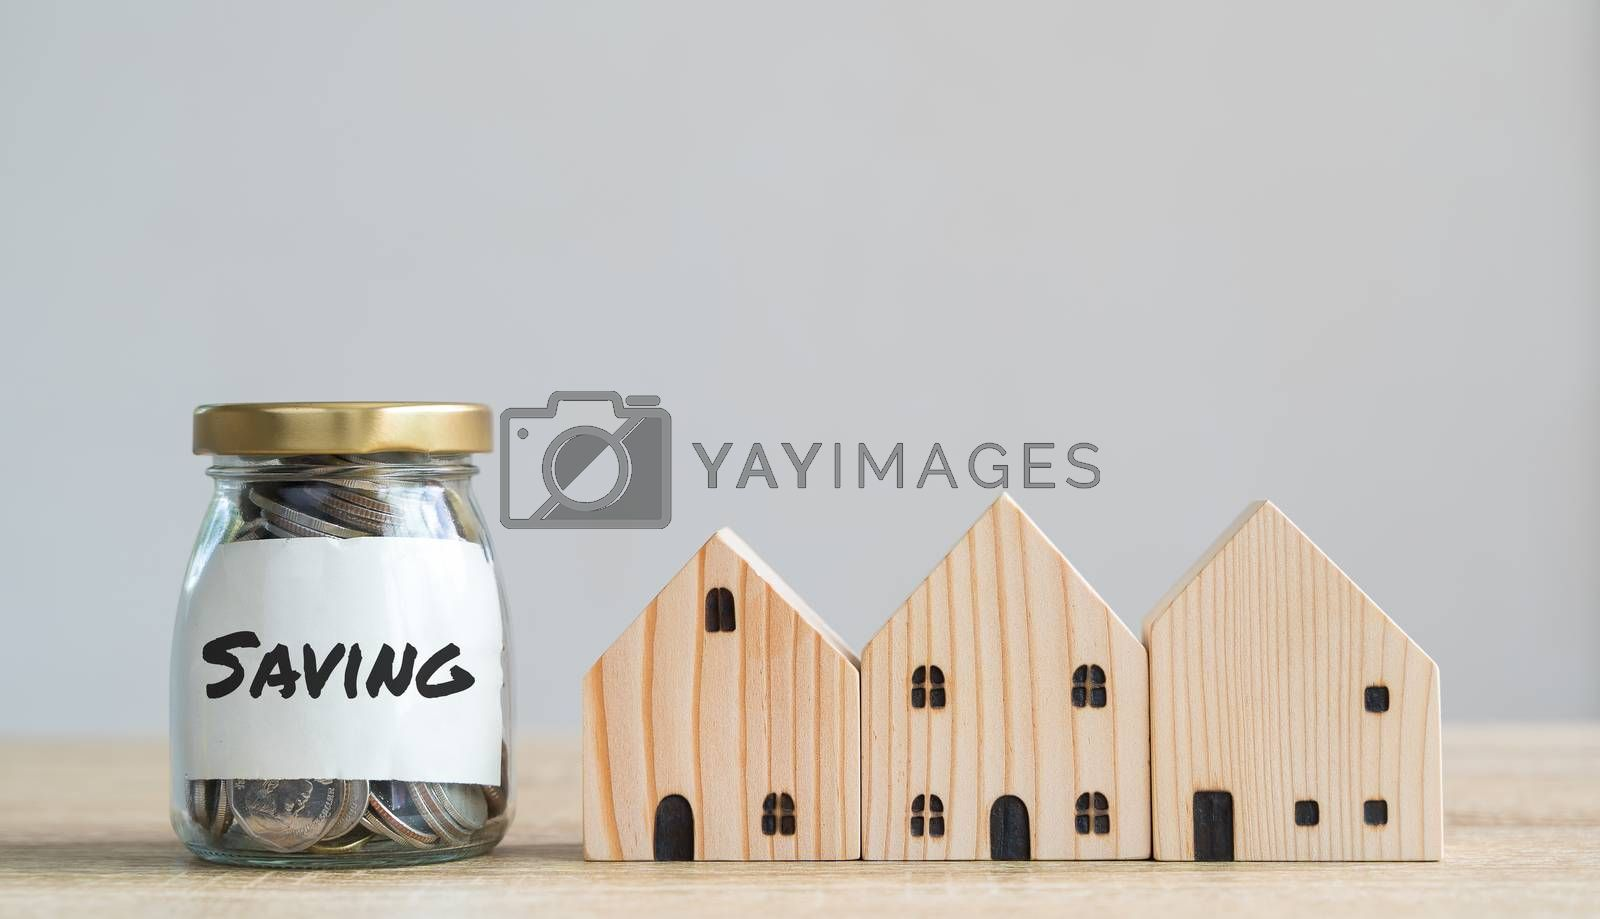 Money savings concepts. Wooden house models with coins in bottle and saving label meaning about saving money to buy a house, refinancing, investment or financial on wooden table with copy space